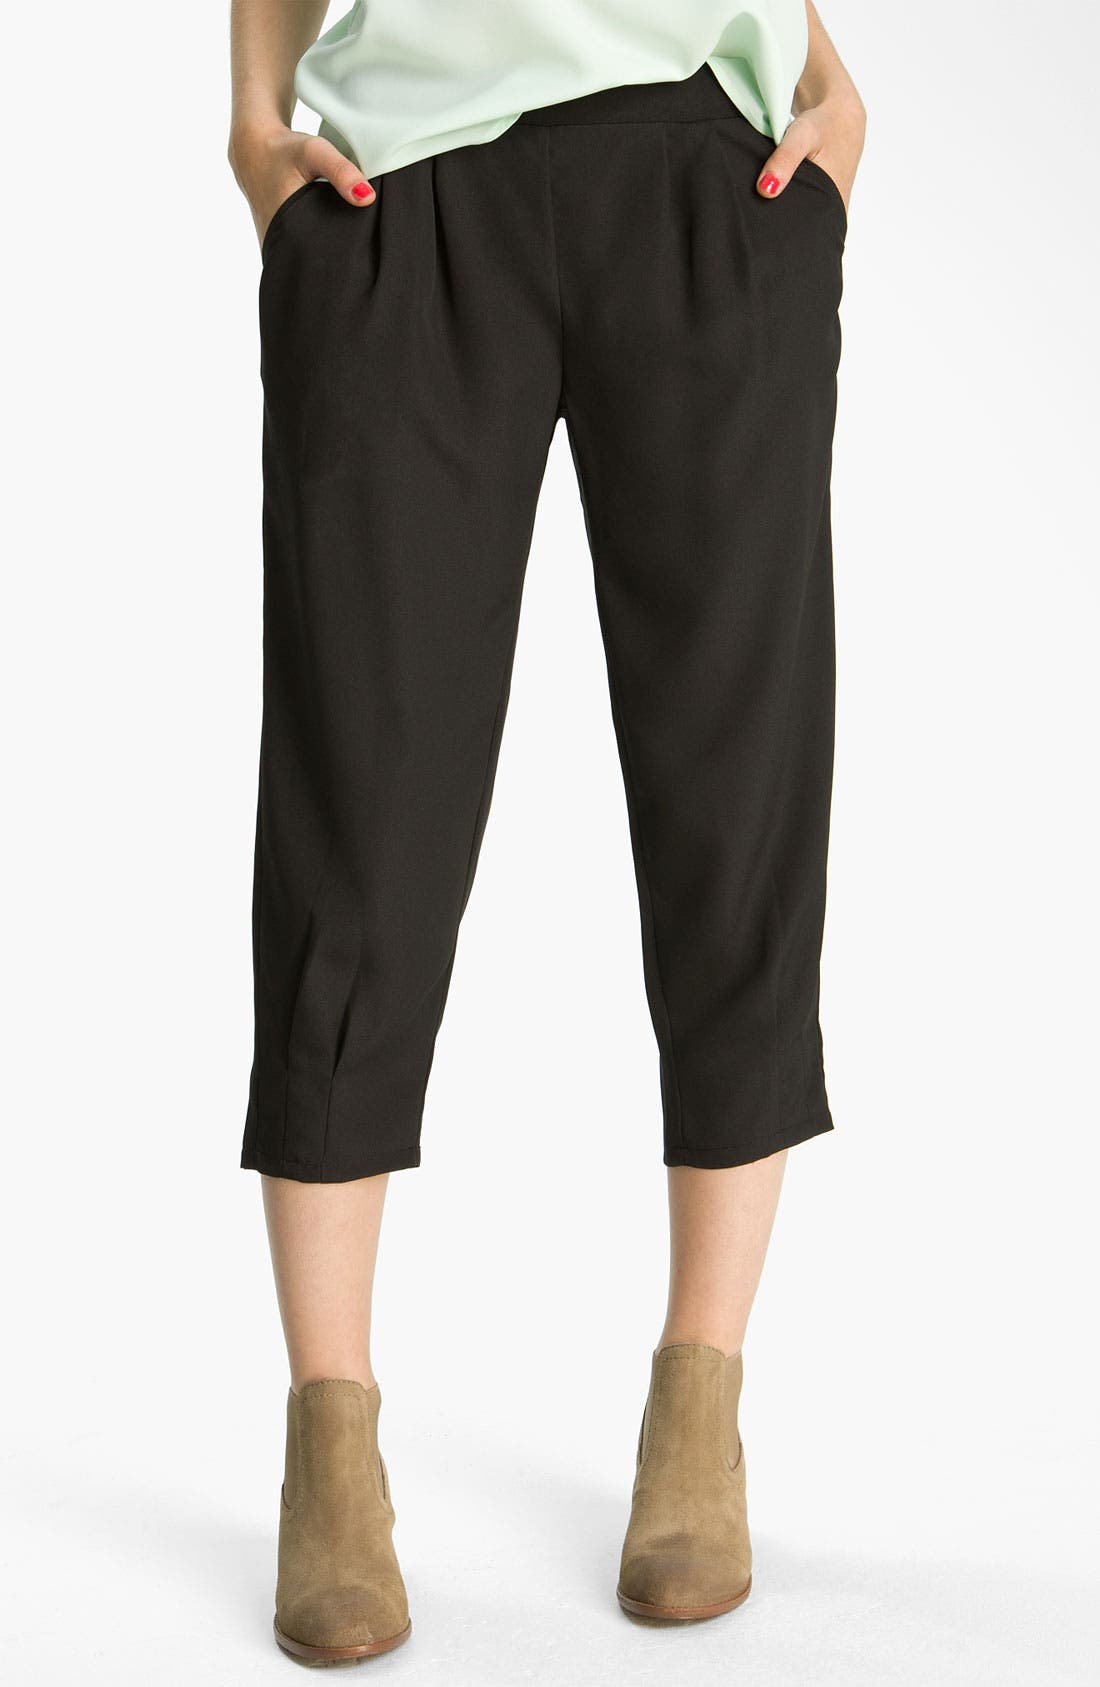 Alternate Image 1 Selected - Mimi Chica Crop Pleated Pants (Juniors)